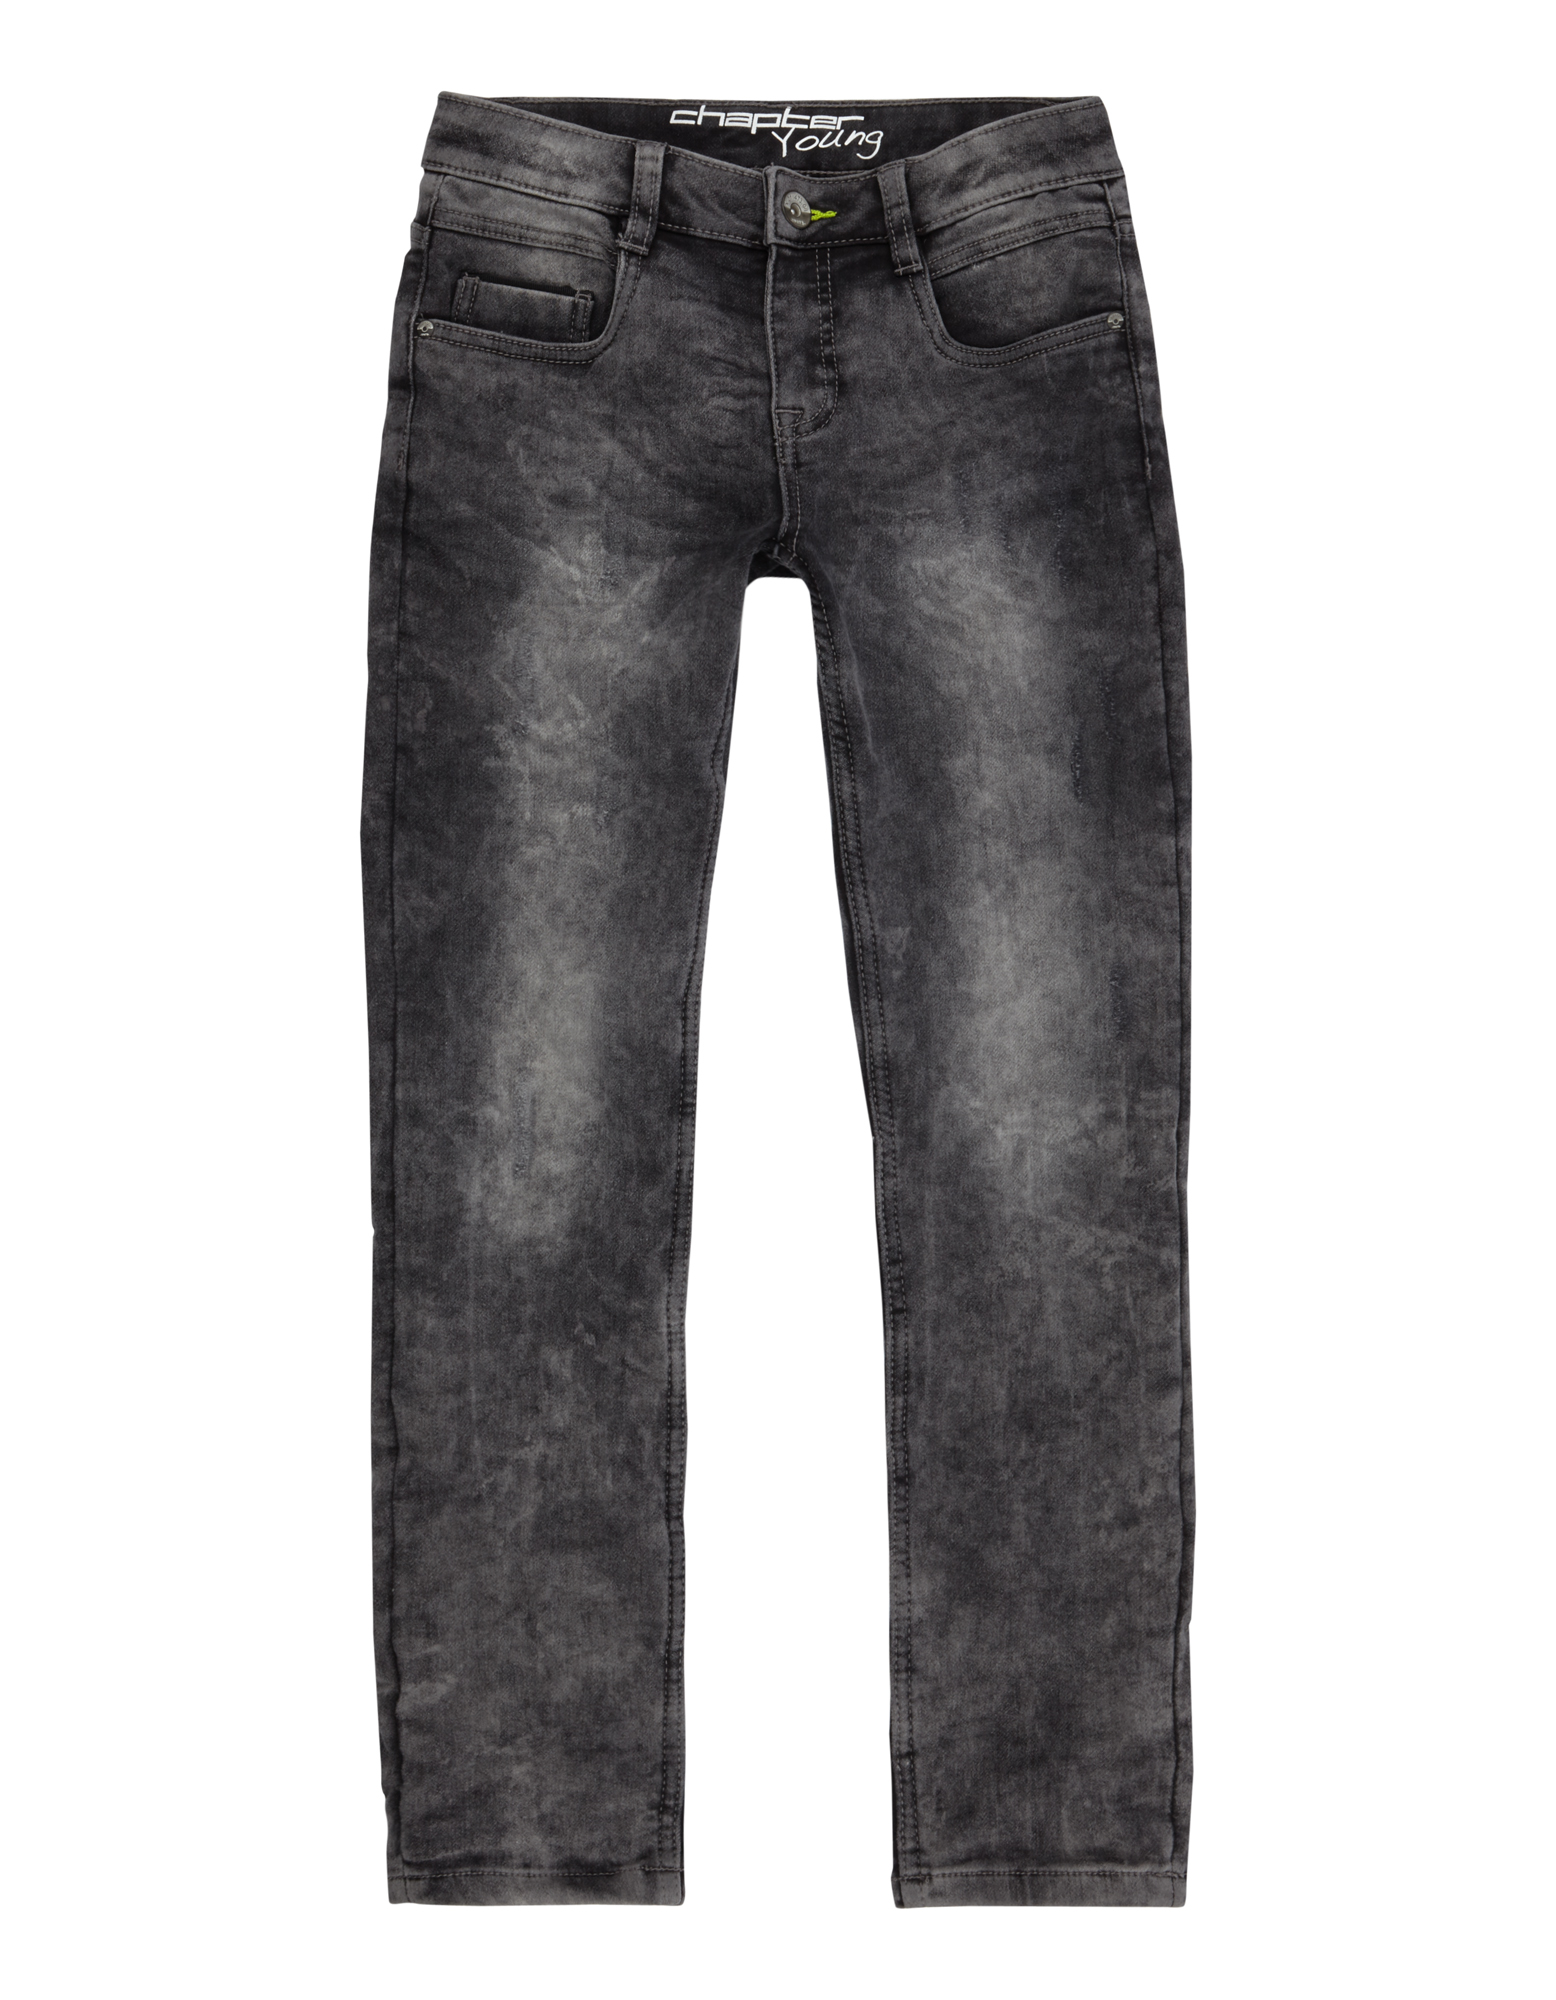 jungen skinny fit jeans im used look takko fashion. Black Bedroom Furniture Sets. Home Design Ideas